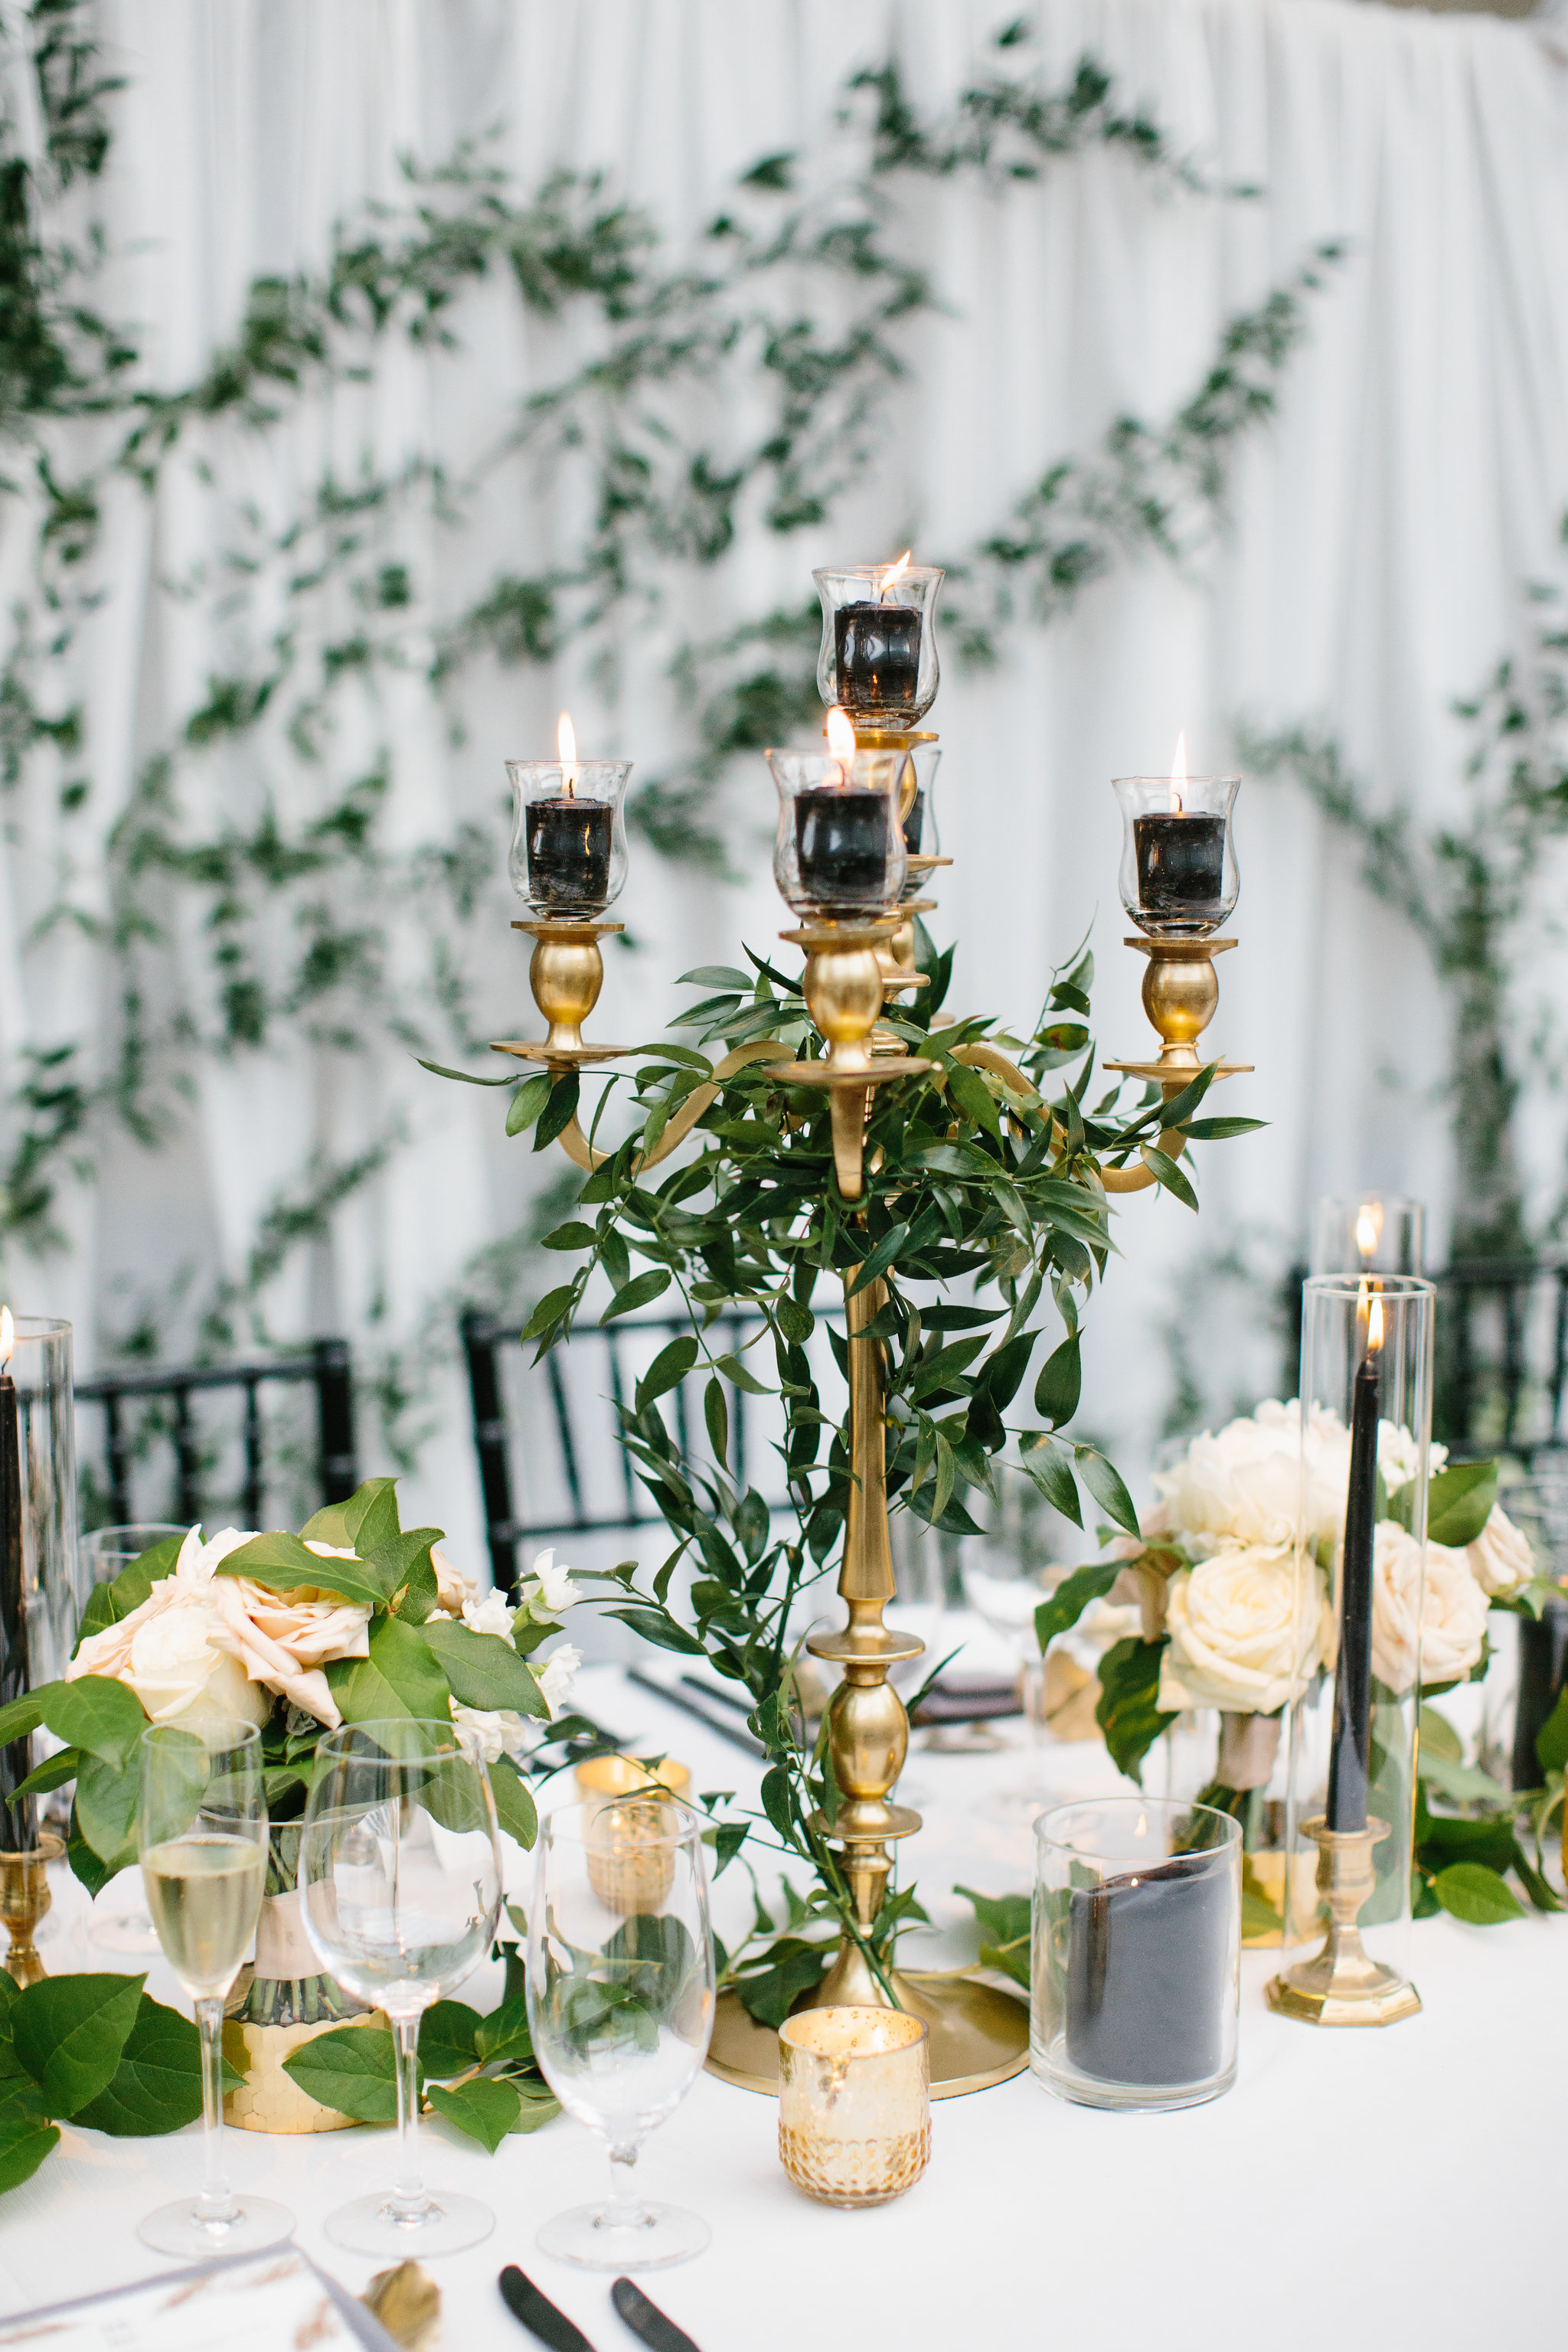 Wedding flowers by Fleur Inc at Chicago Illuminating Company.  Planning by LK Events, Images by Katie Kett Photography. Candelabra Centerpiece.